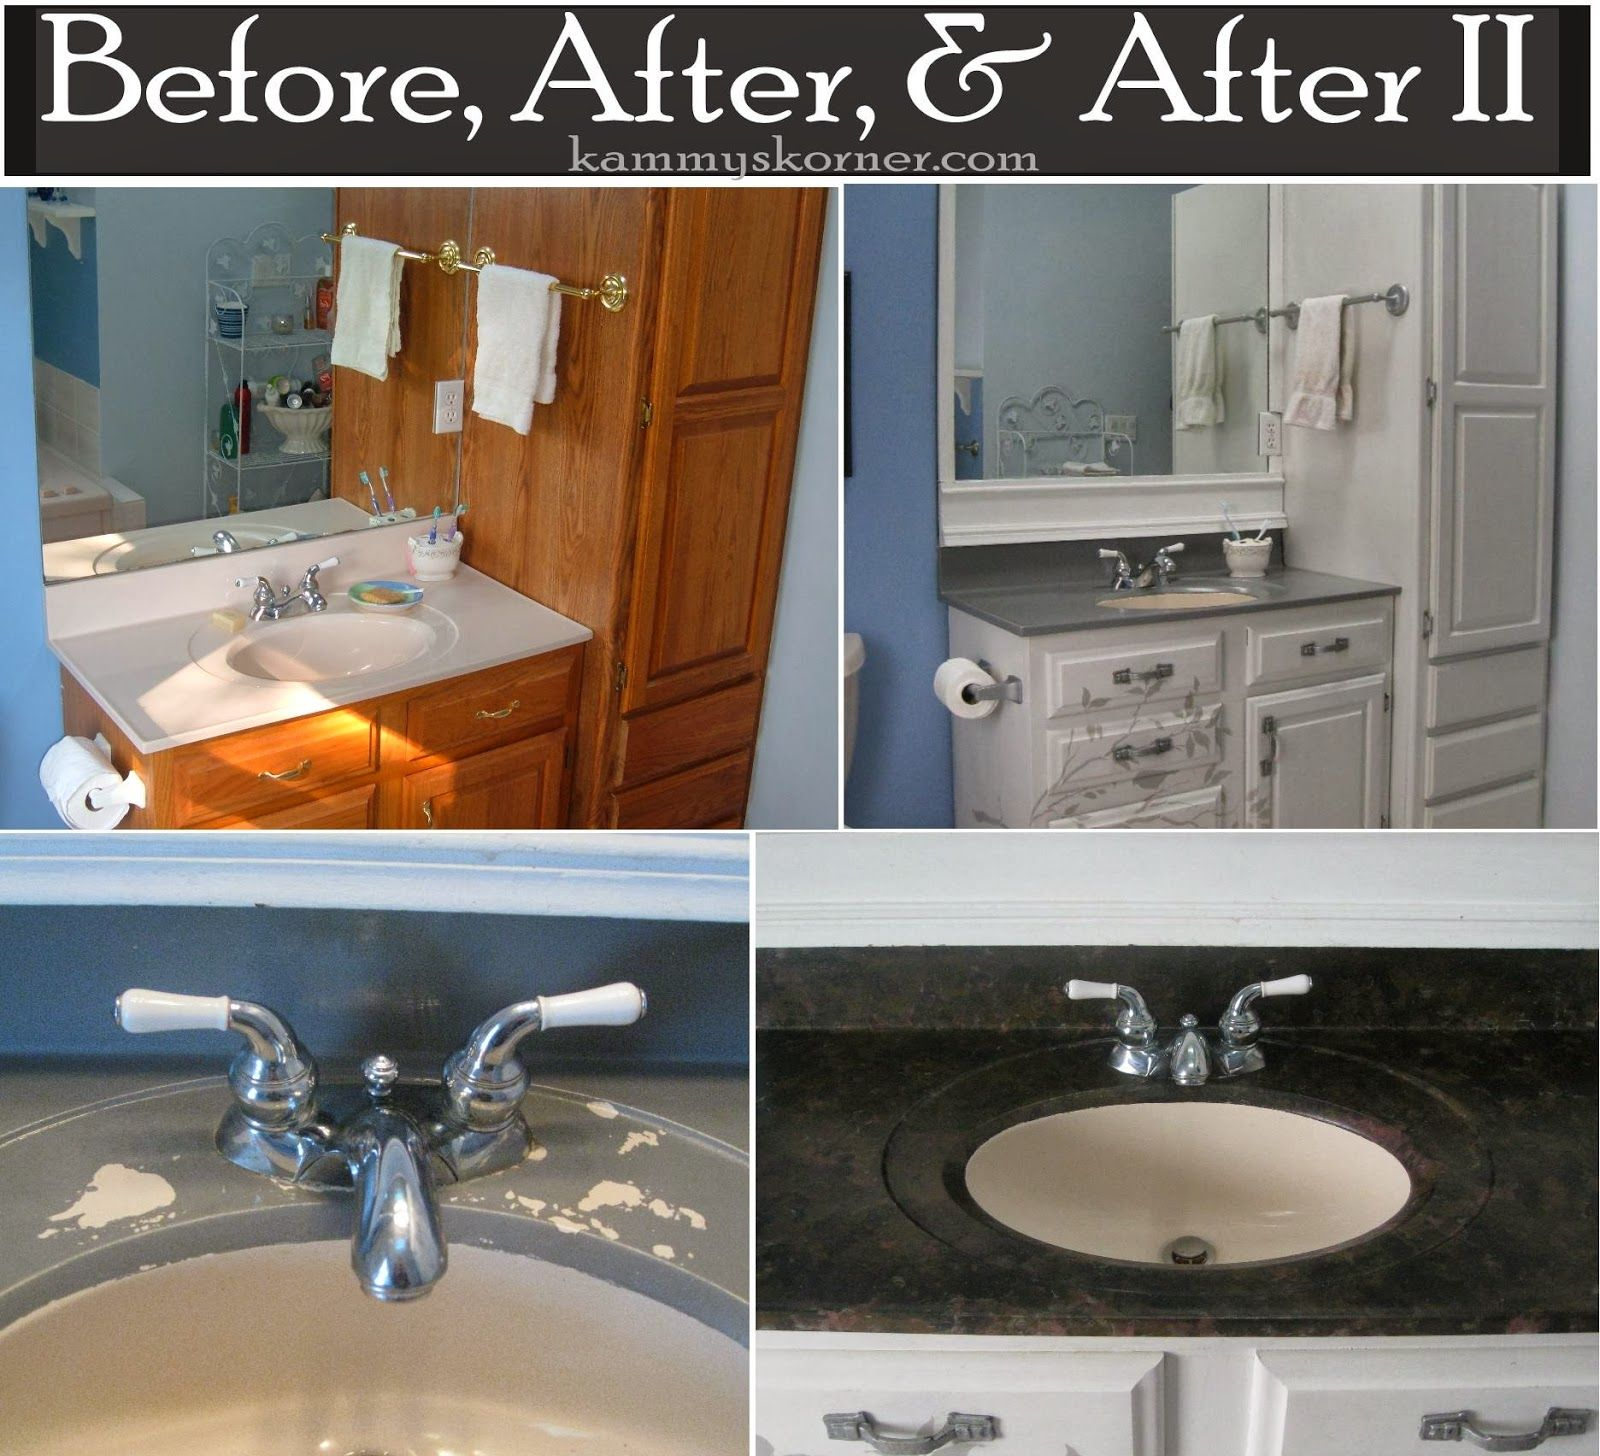 Painting A Porcelain Vanity Countertop {New And Improved}